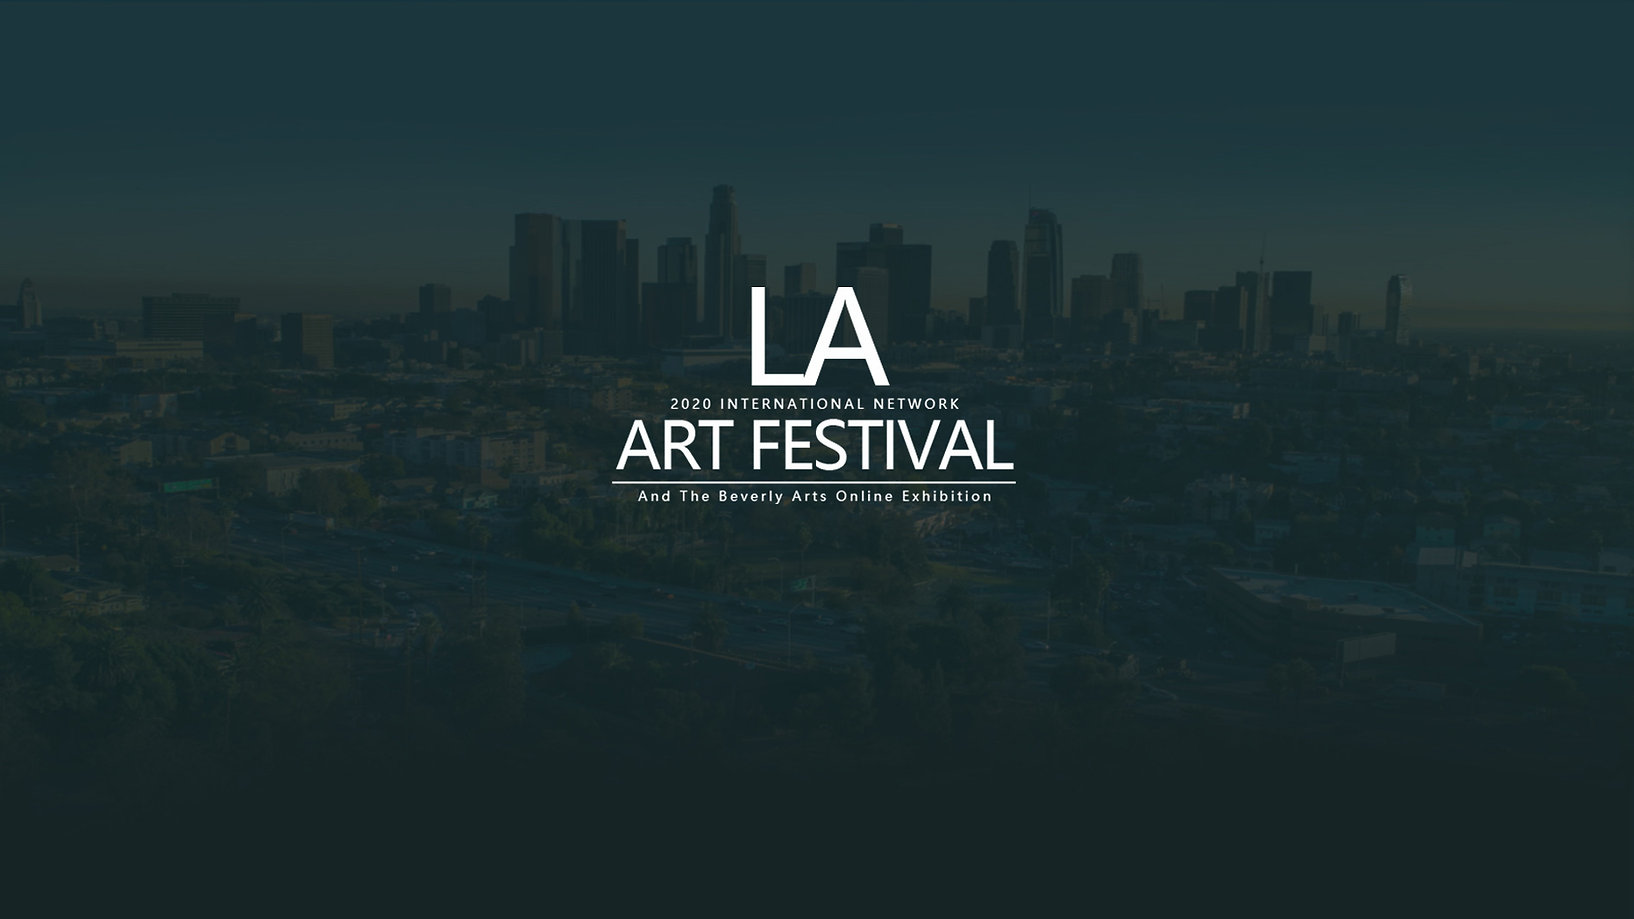 LA-Art-Festival-with-Logo-Background_80.